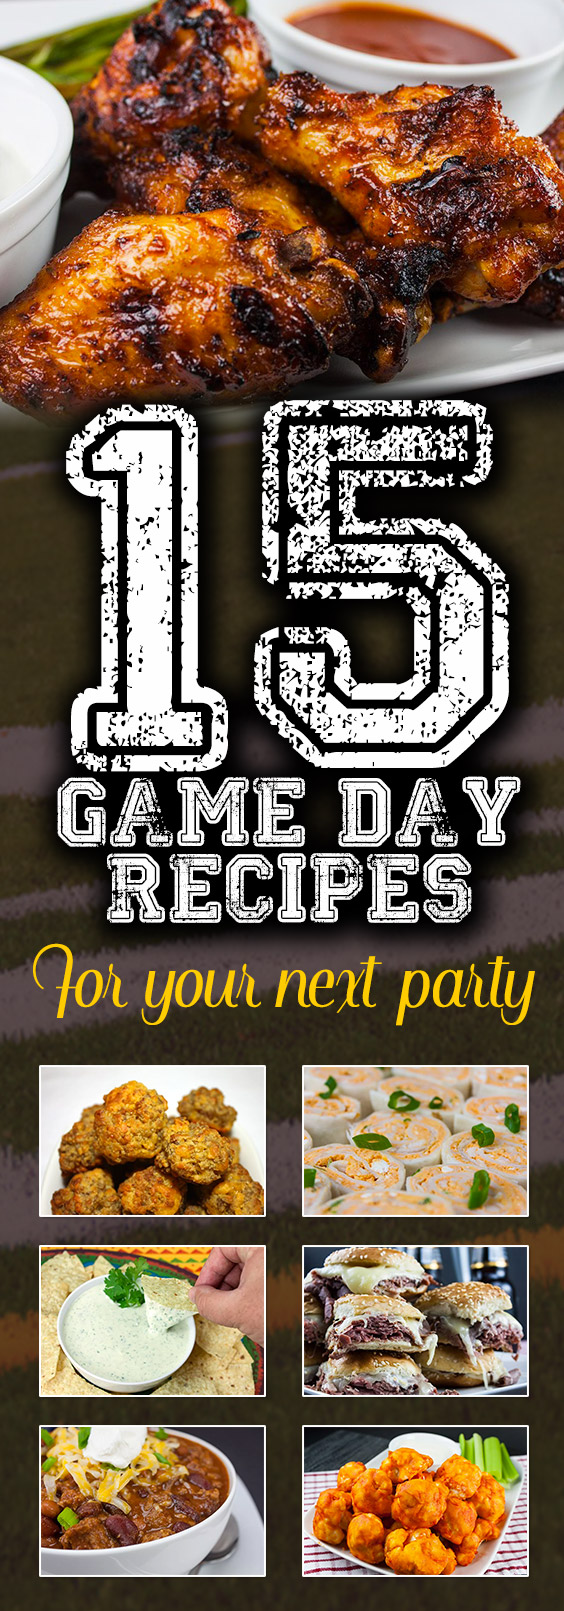 15 Crowd Pleasing Game Day Recipes For Your Next Party